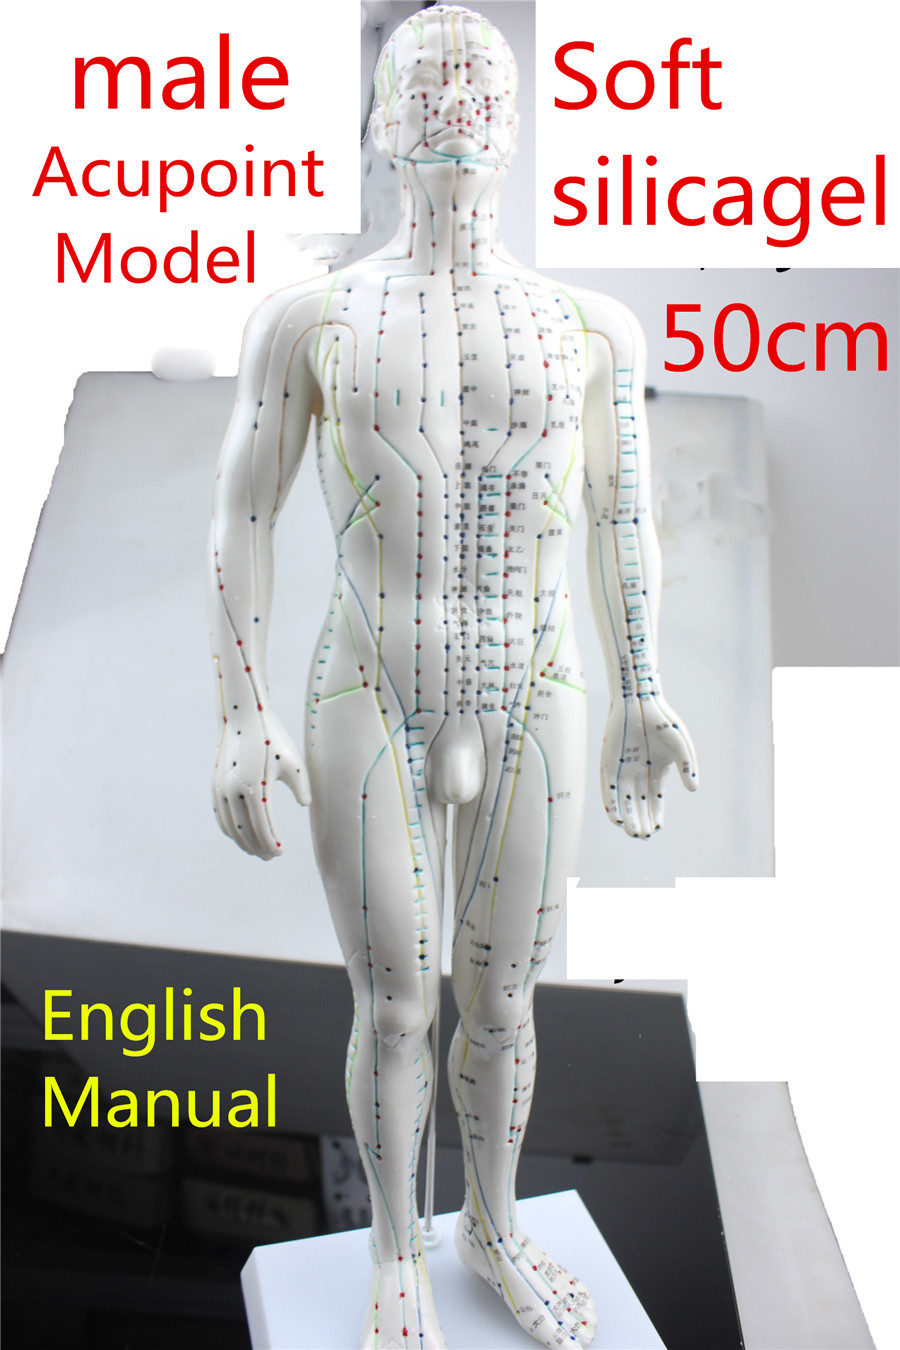 HD Soft silicagel Acupuncture Model 50cm male with Base Human acupuncture meridians model Acupoint Model Acupuncture massage hd hard 60 cm male human acupuncture acupoint model muscle anatomy human body acupuncture point model human acupoints model